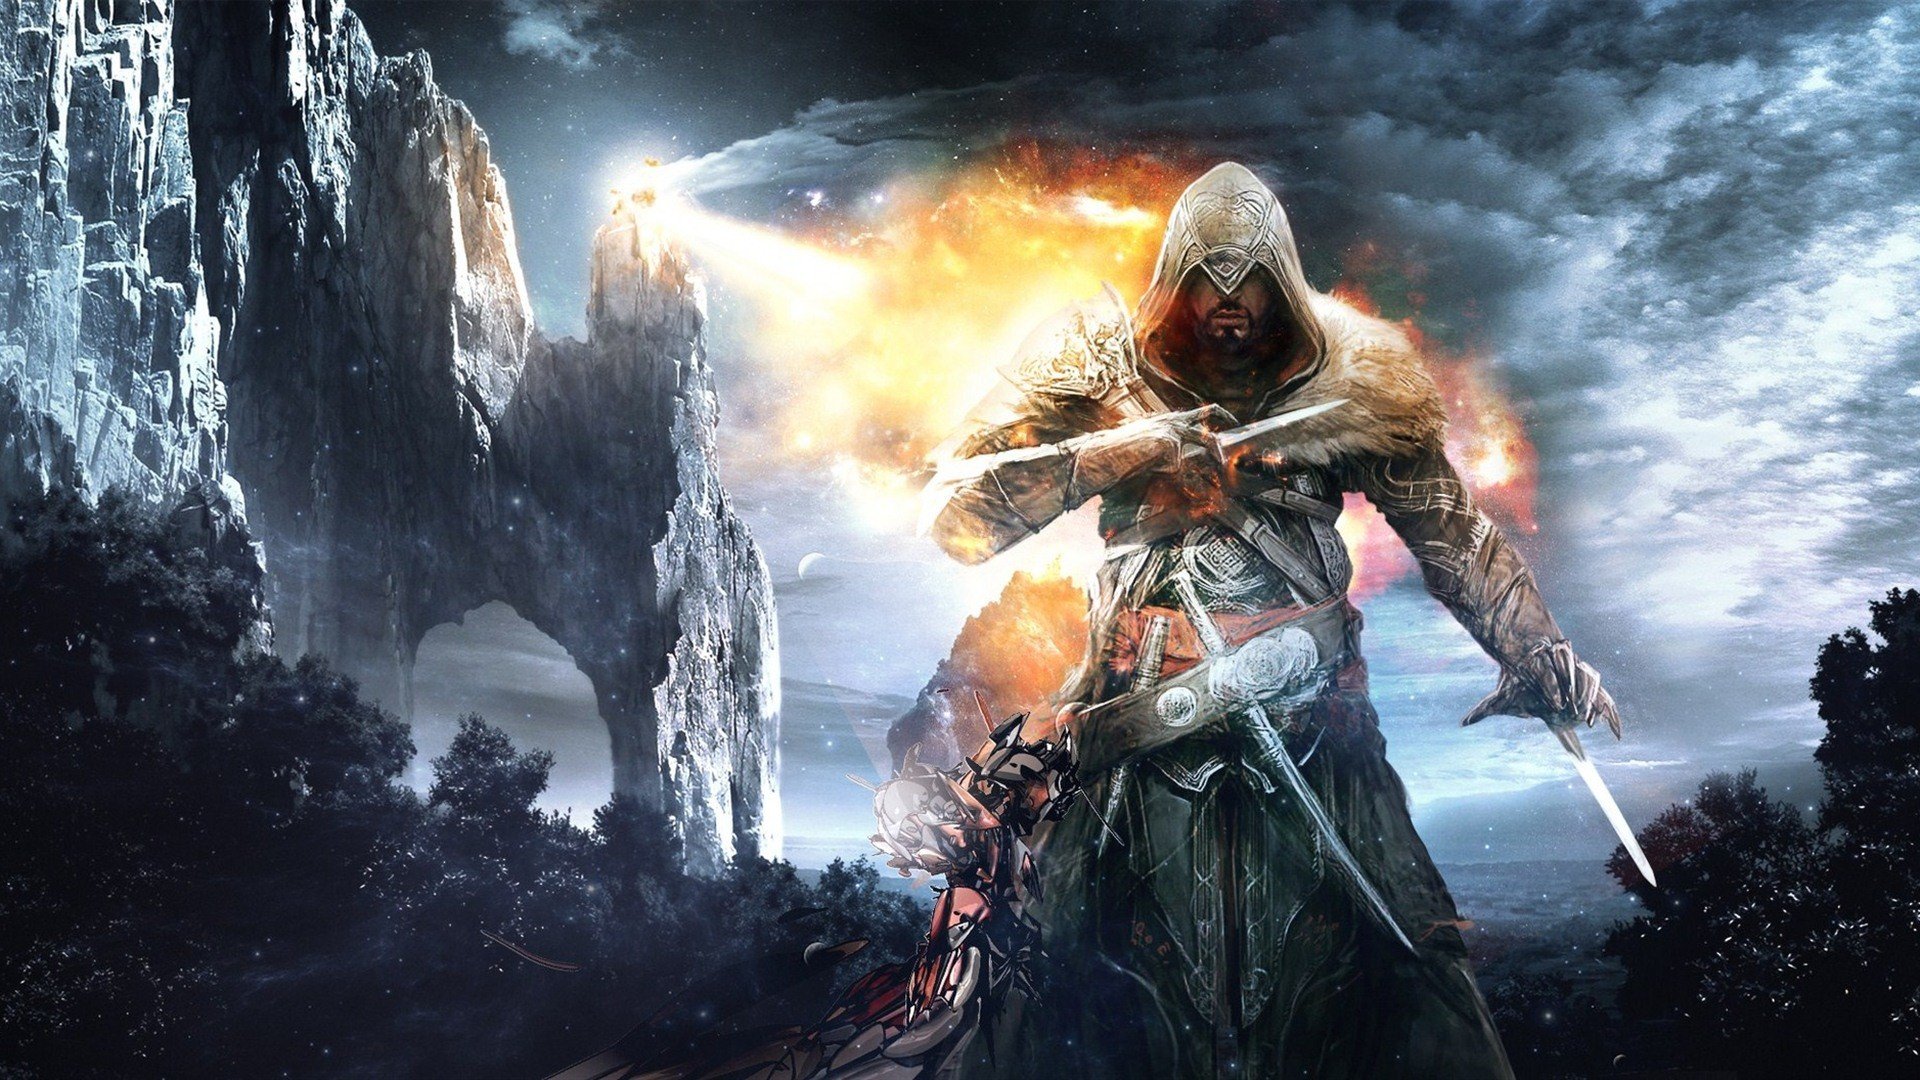 Assassin's Creed: Revelations HD wallpapers #11 – 1920×1080.